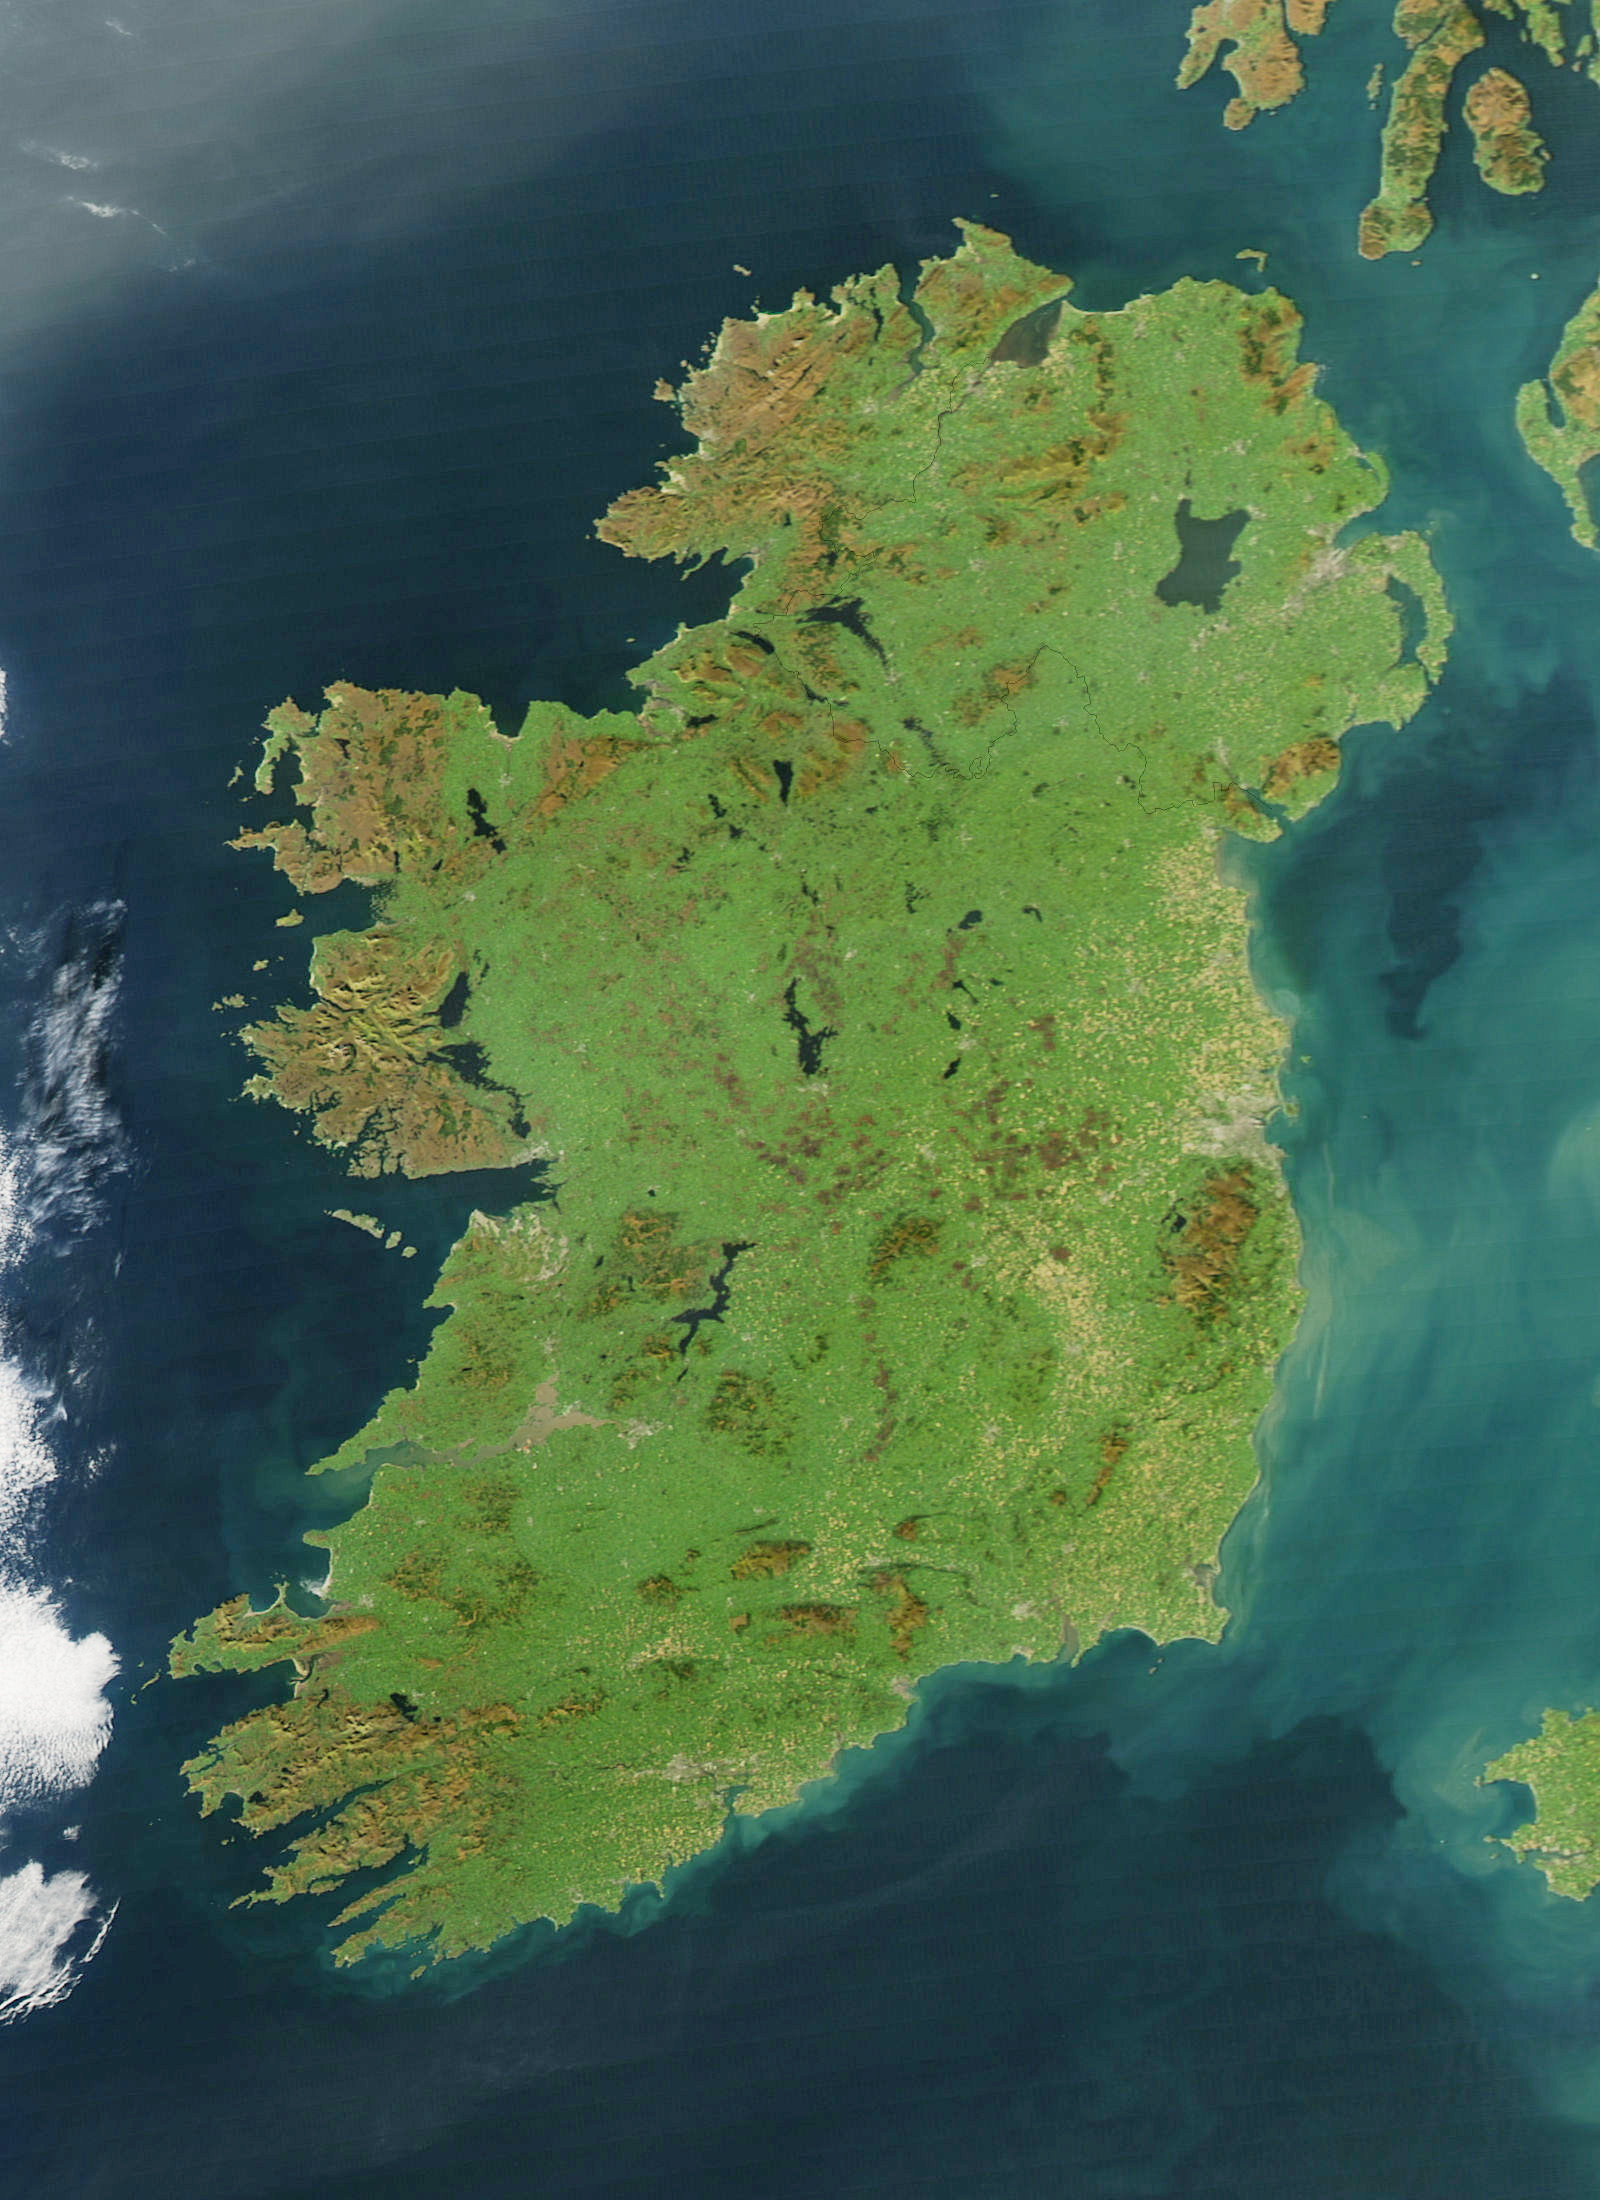 A satellite image of Ireland, for those not familiar with the shape of the country.